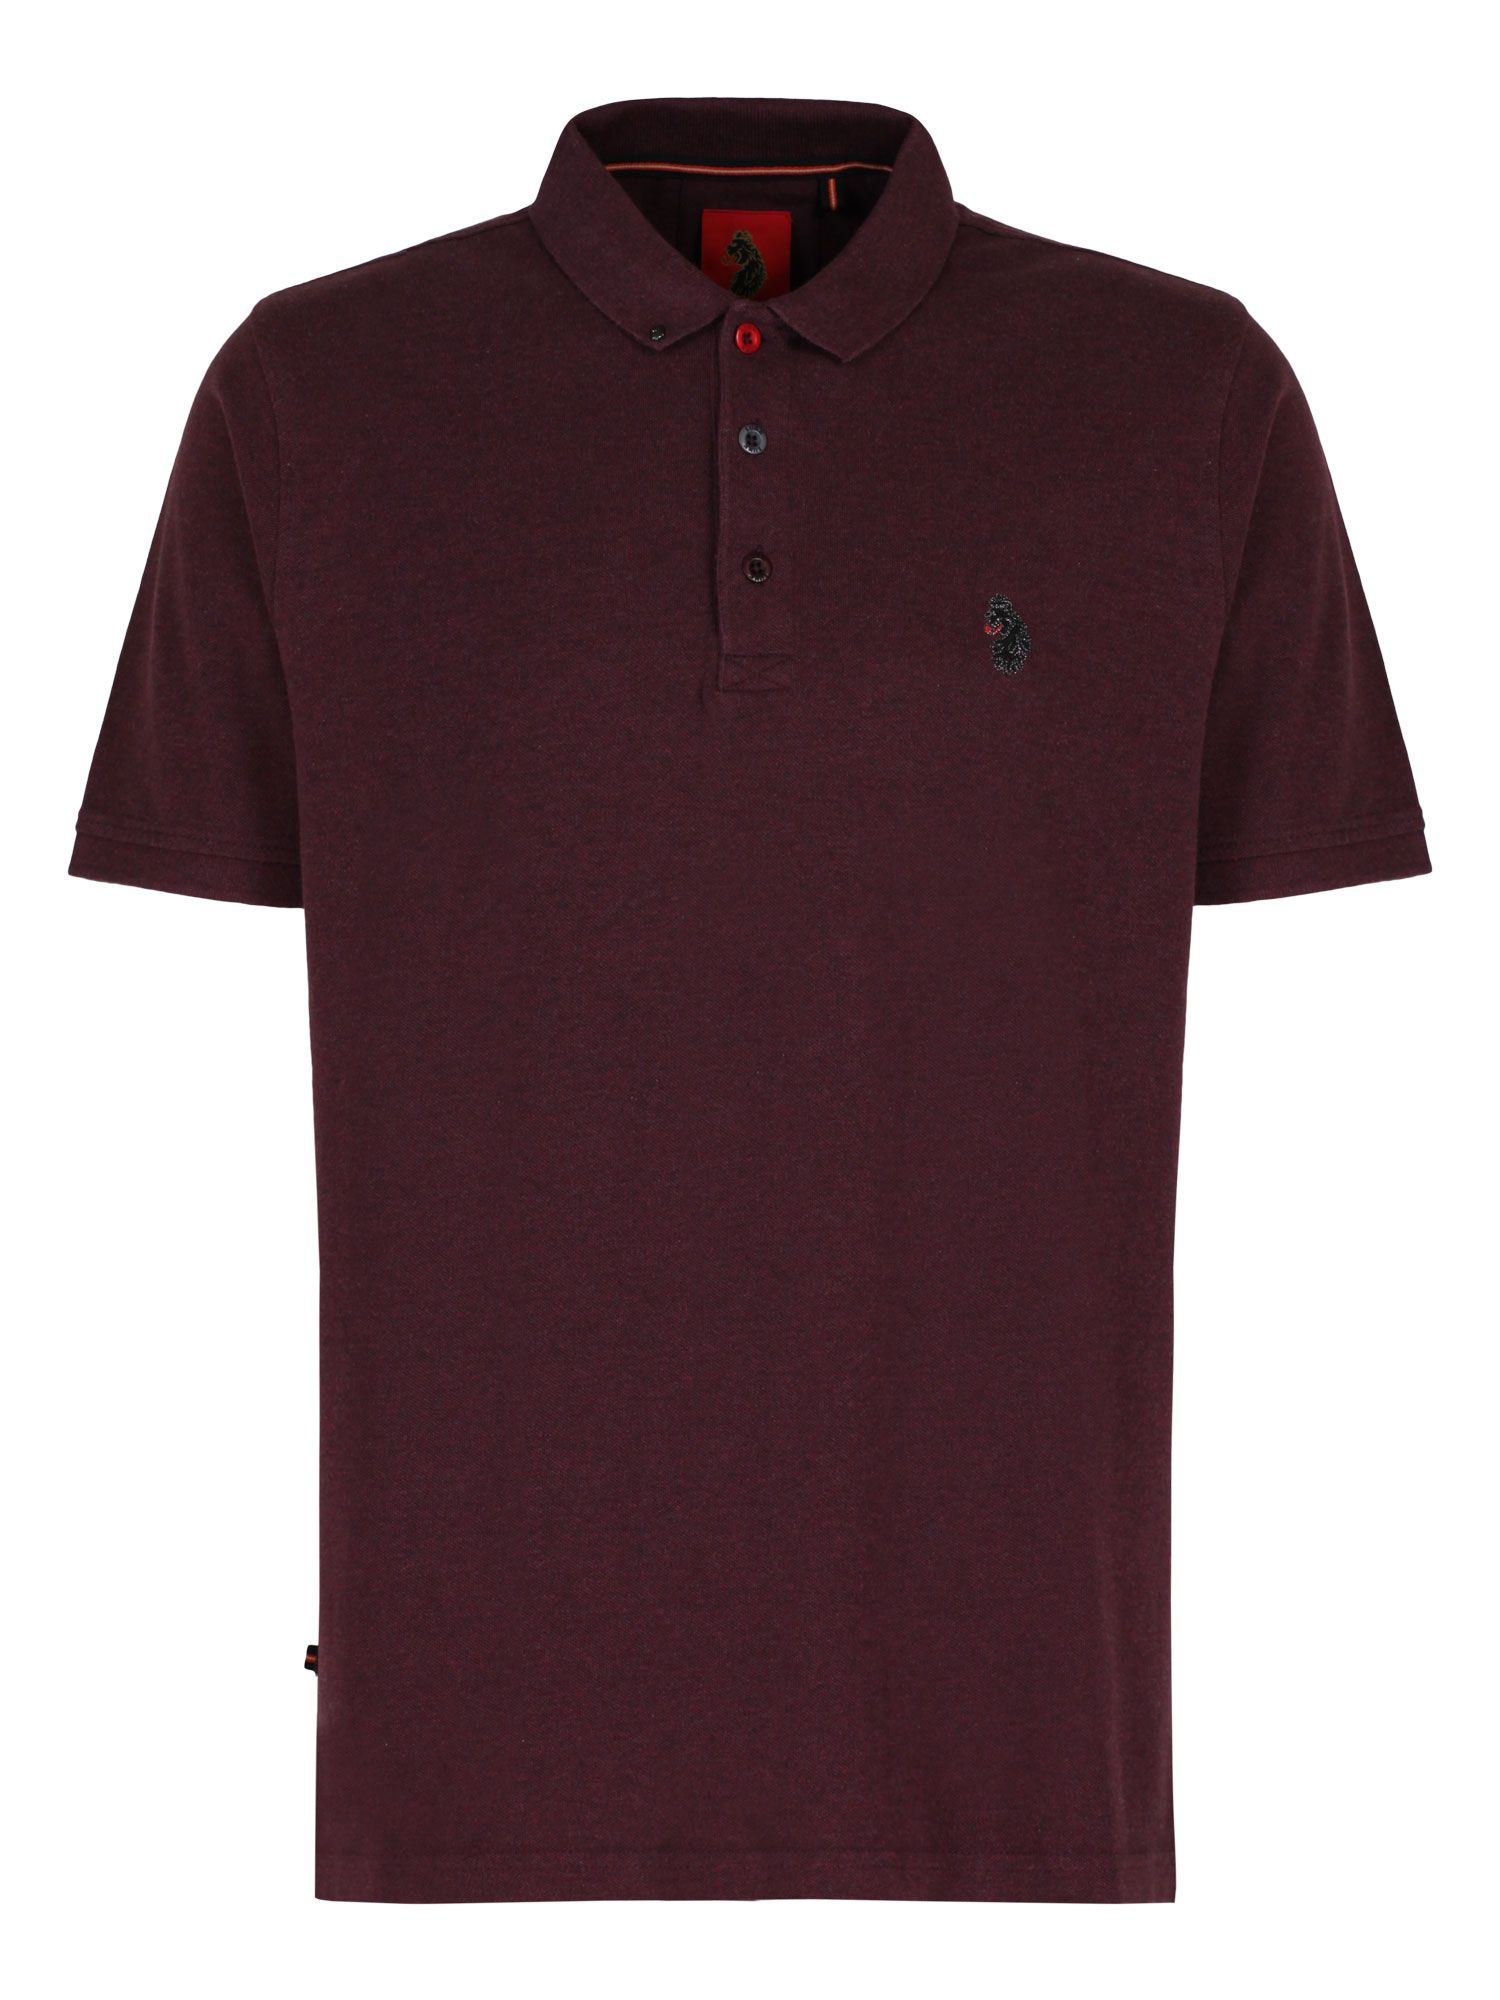 Men's Luke 1977 Williams Polo Shirt, Purple